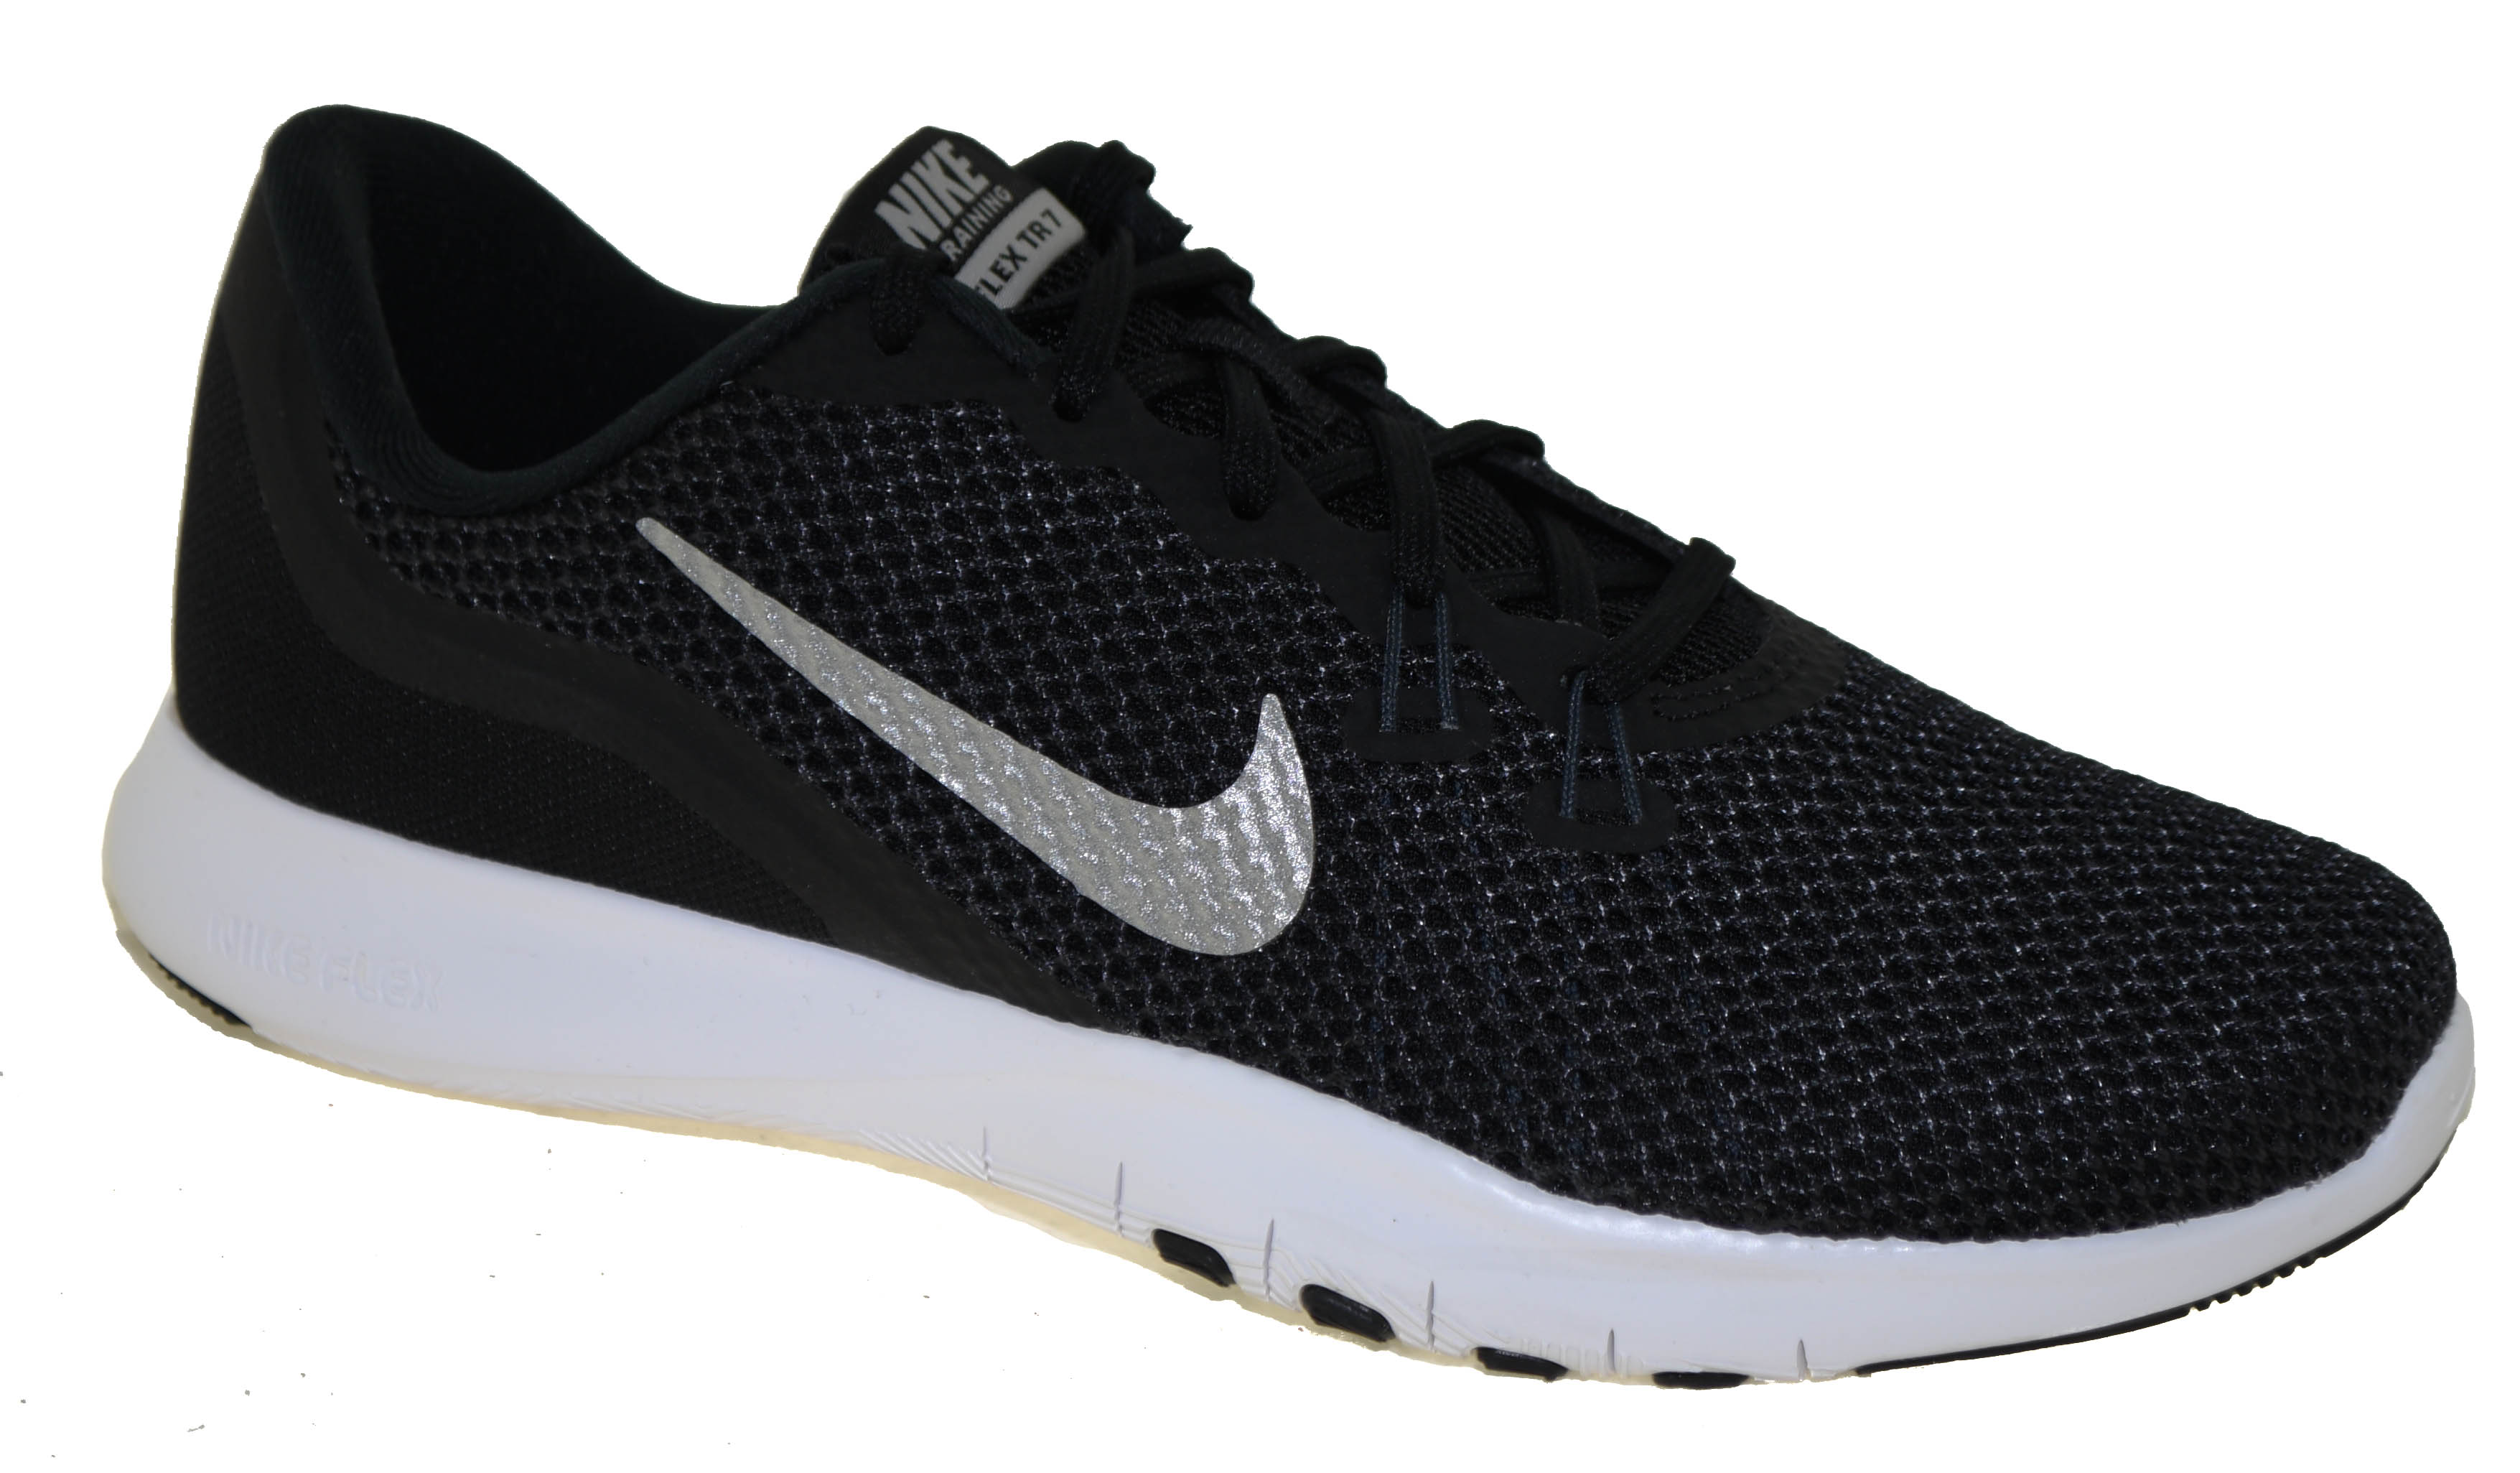 0839937f328074 Click Thumbnails to Enlarge. Push yourself in the Nike Flex Trainer 7 ...